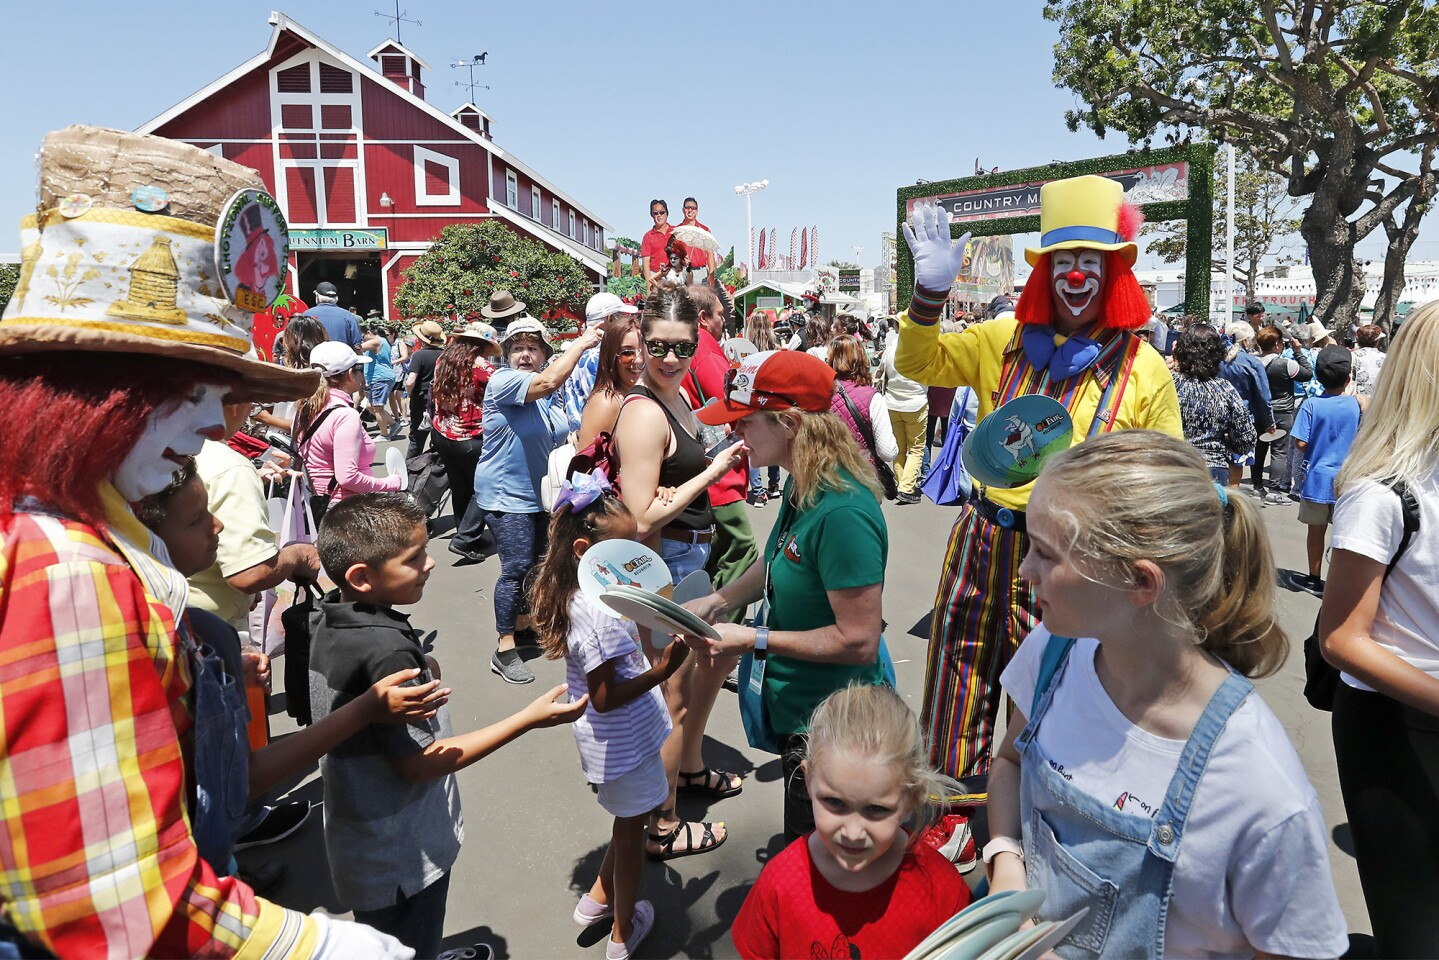 Fair clowns greet visitors at the Blue Gate entrance on opening day of the Orange County Fair on Friday in Costa Mesa.